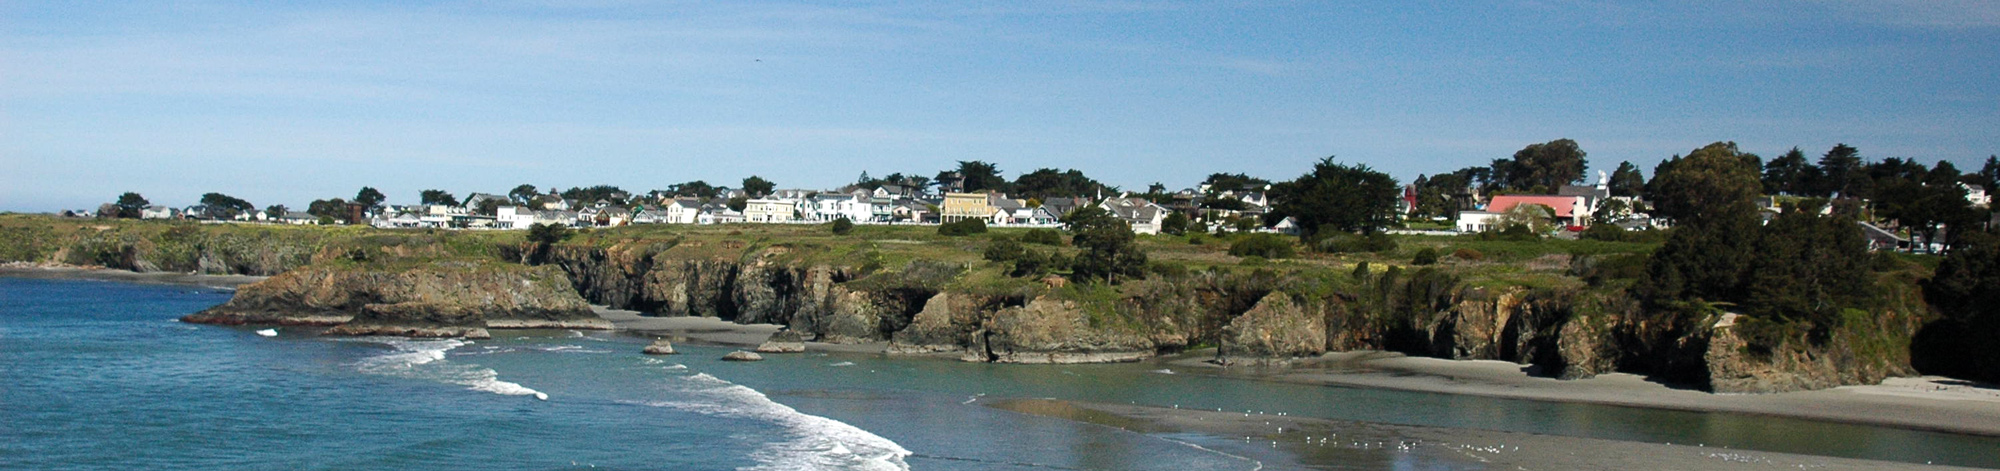 MendocinoFun.com: Mendocino Bay, Headlands, and Village